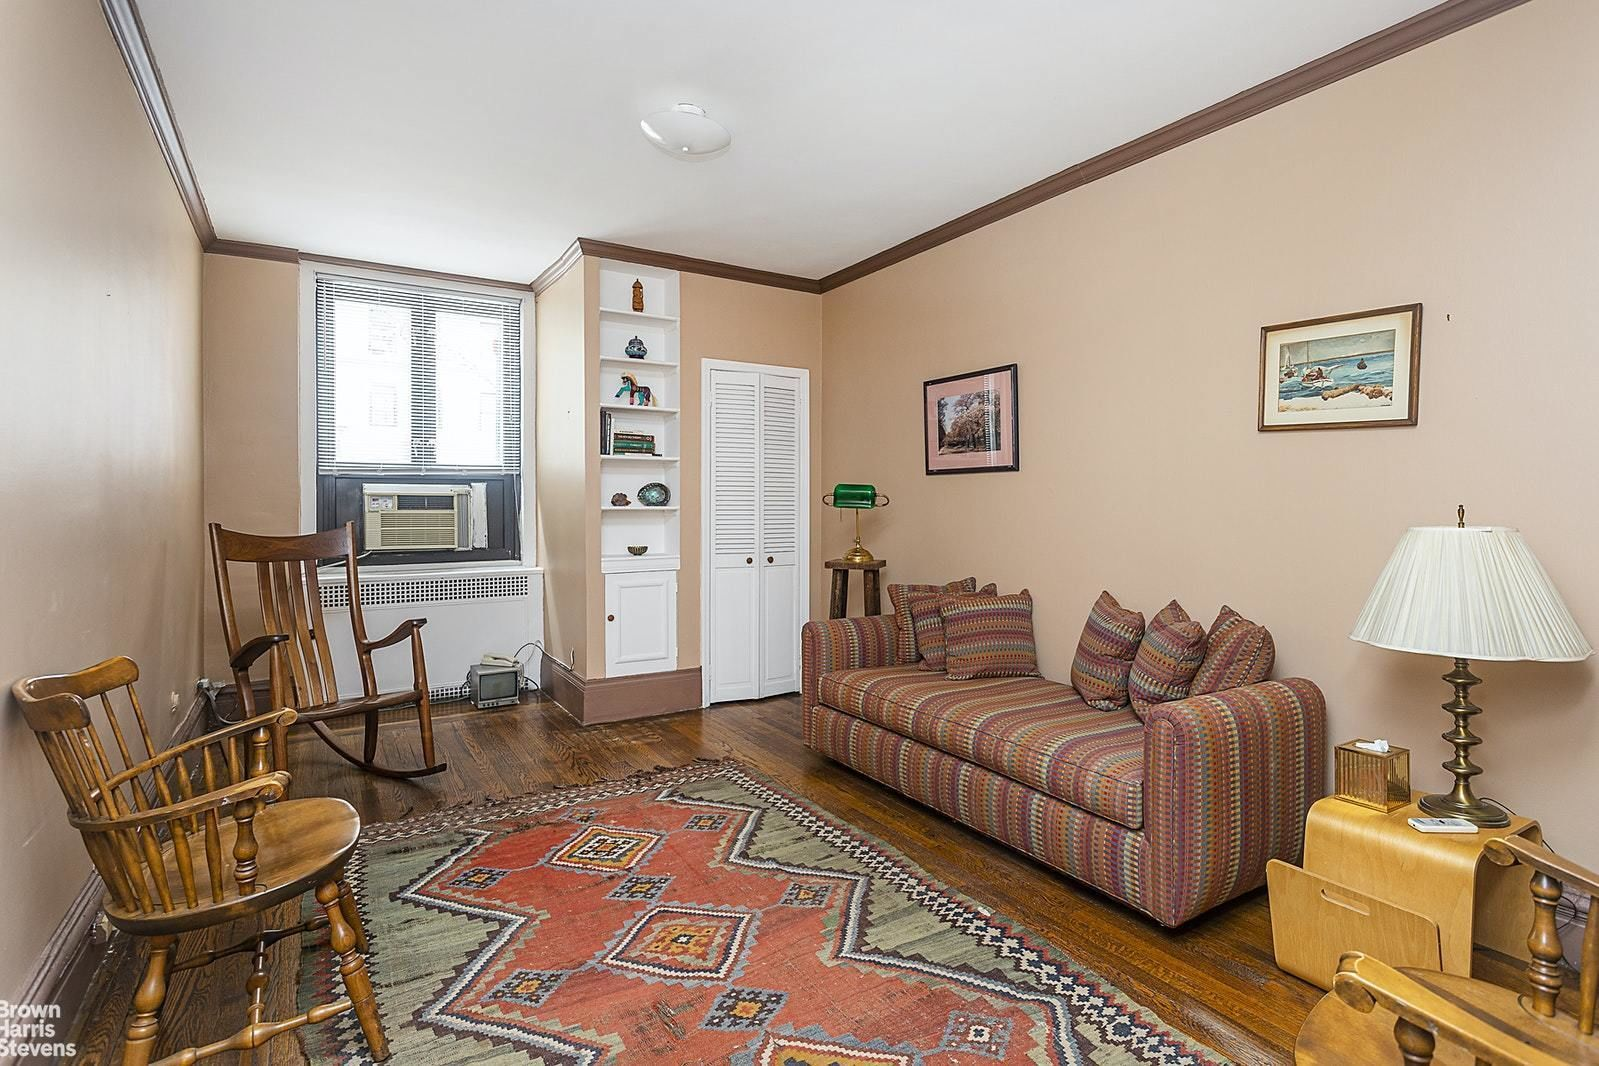 Apartment for sale at 180 East 79th Street, Apt MEDICAL